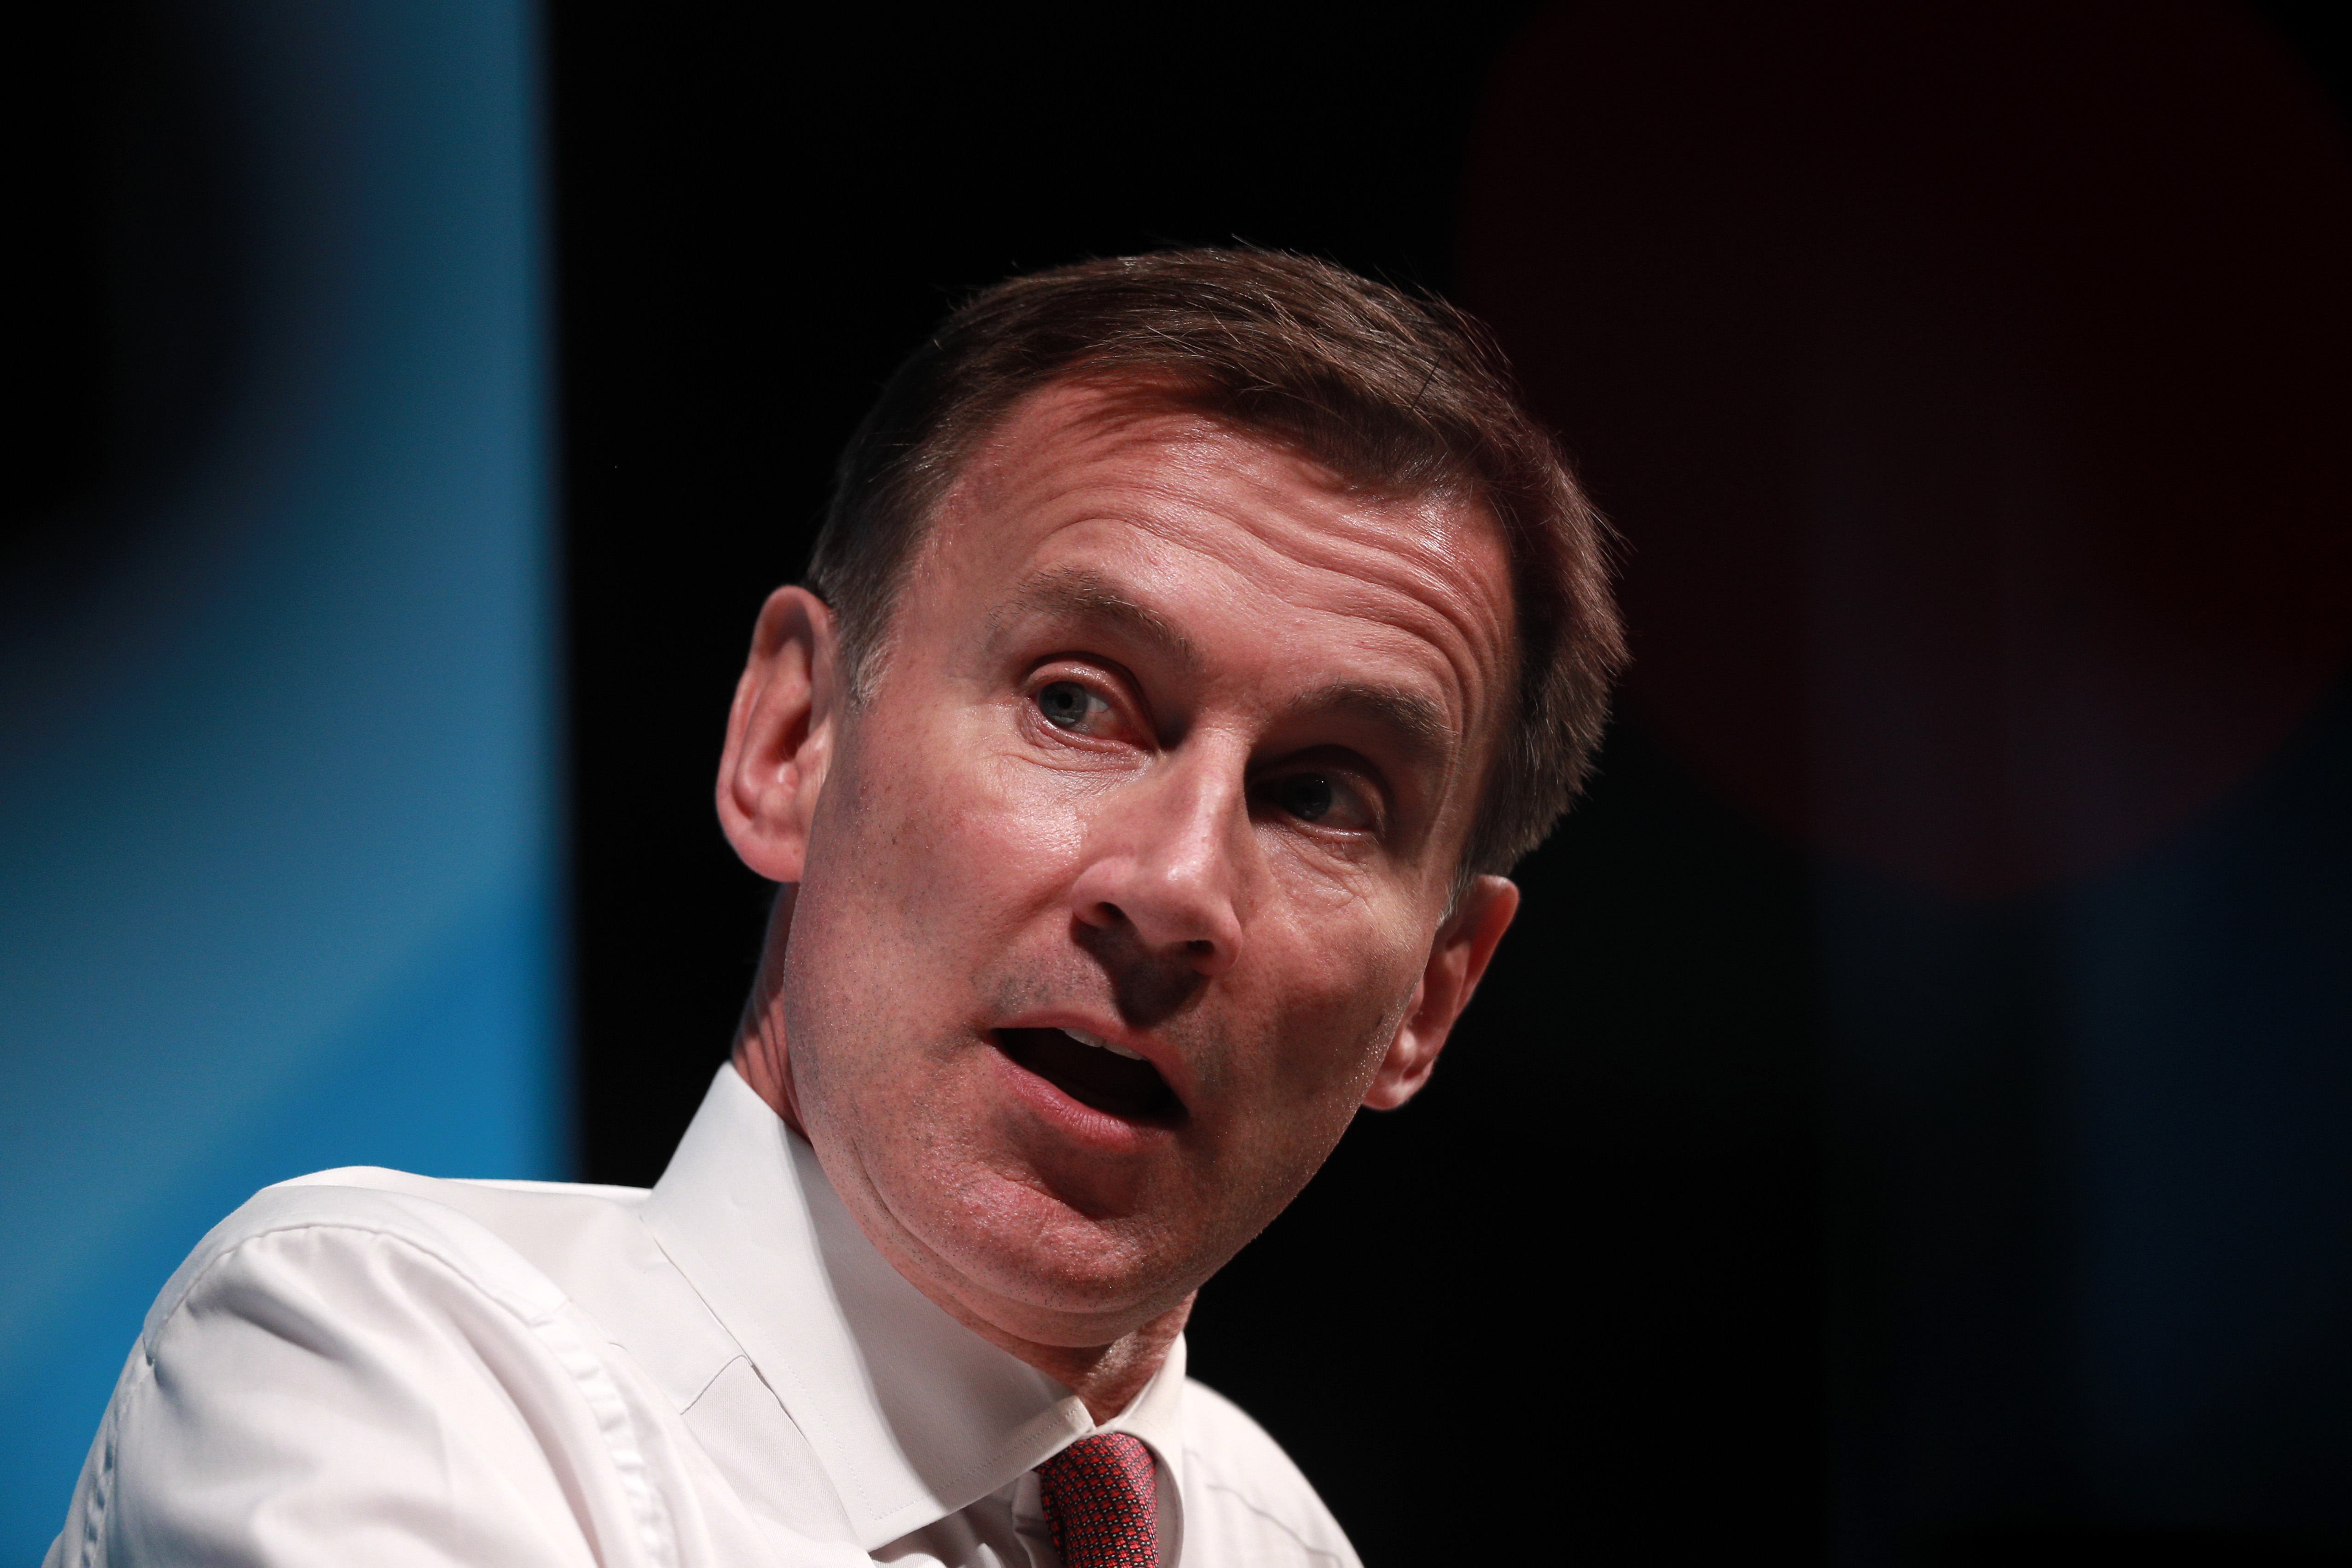 British Foreign Secretary Jeremy Hunt onstage during the Conservative leadership hustings in Cheltenham, England on July 12.